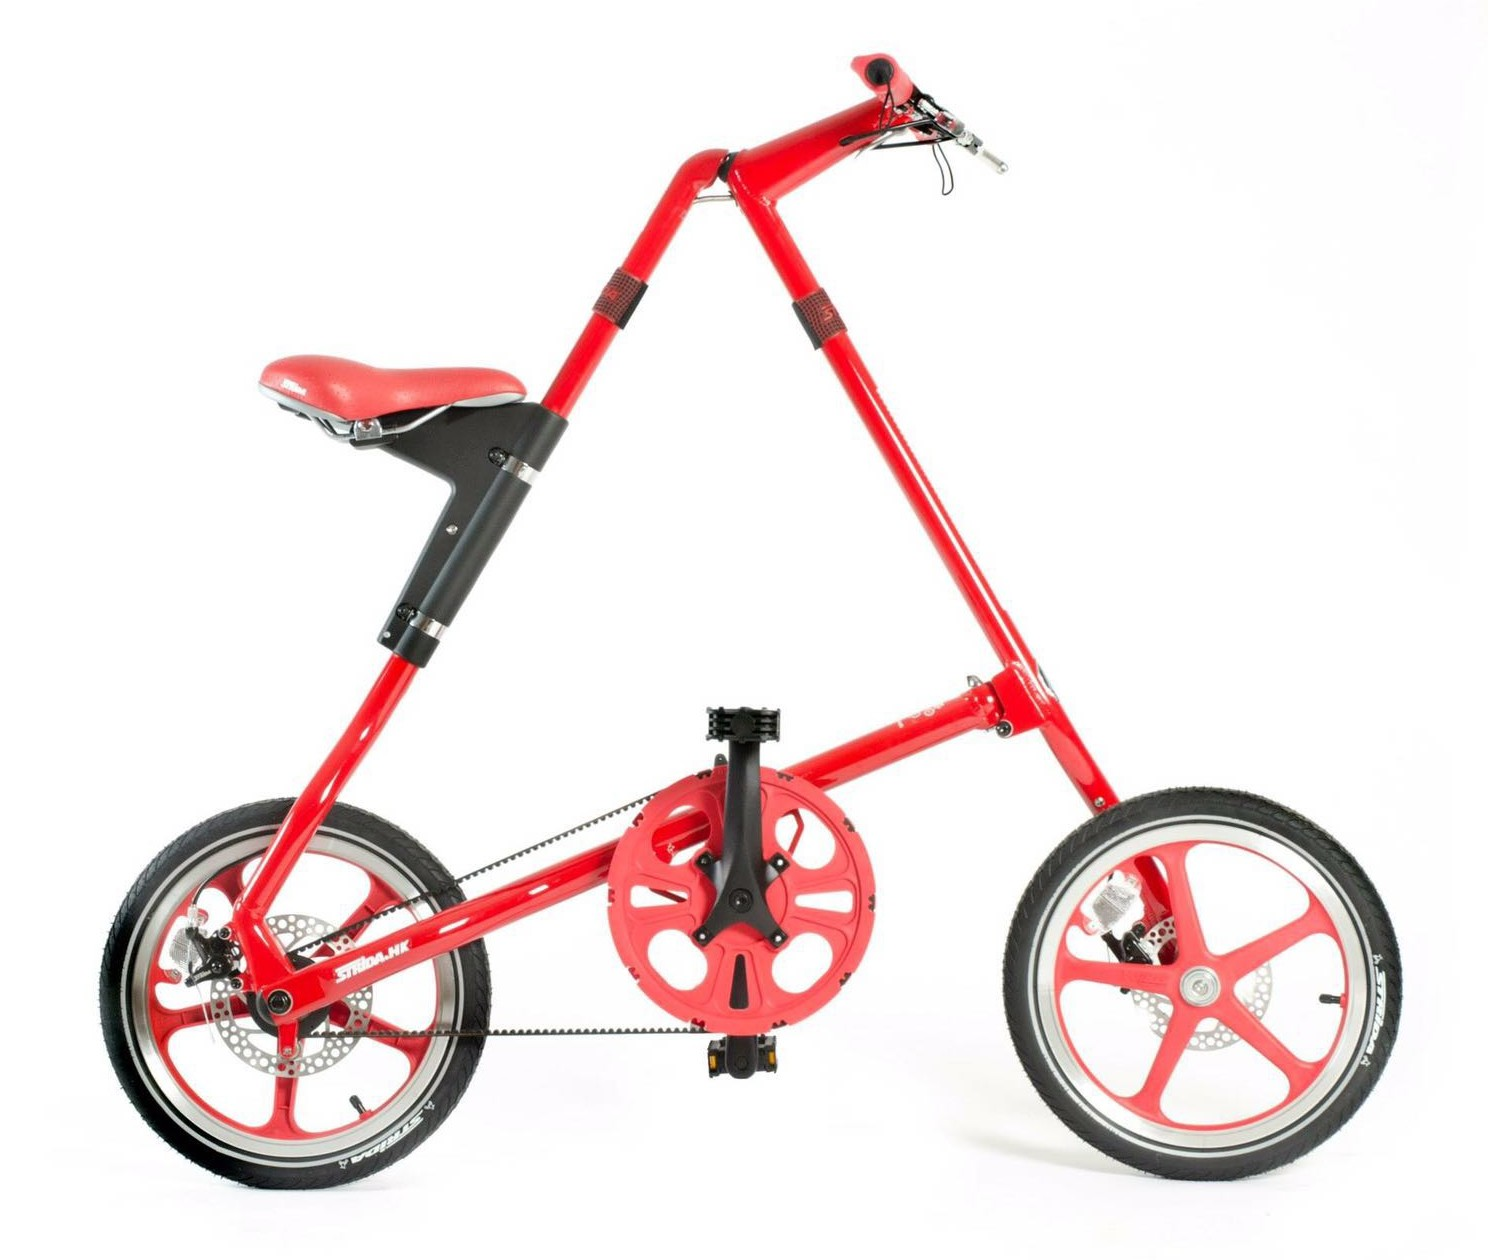 STRiDA LT full red strida lt STRiDA LT IMG 4931 e1457856295972